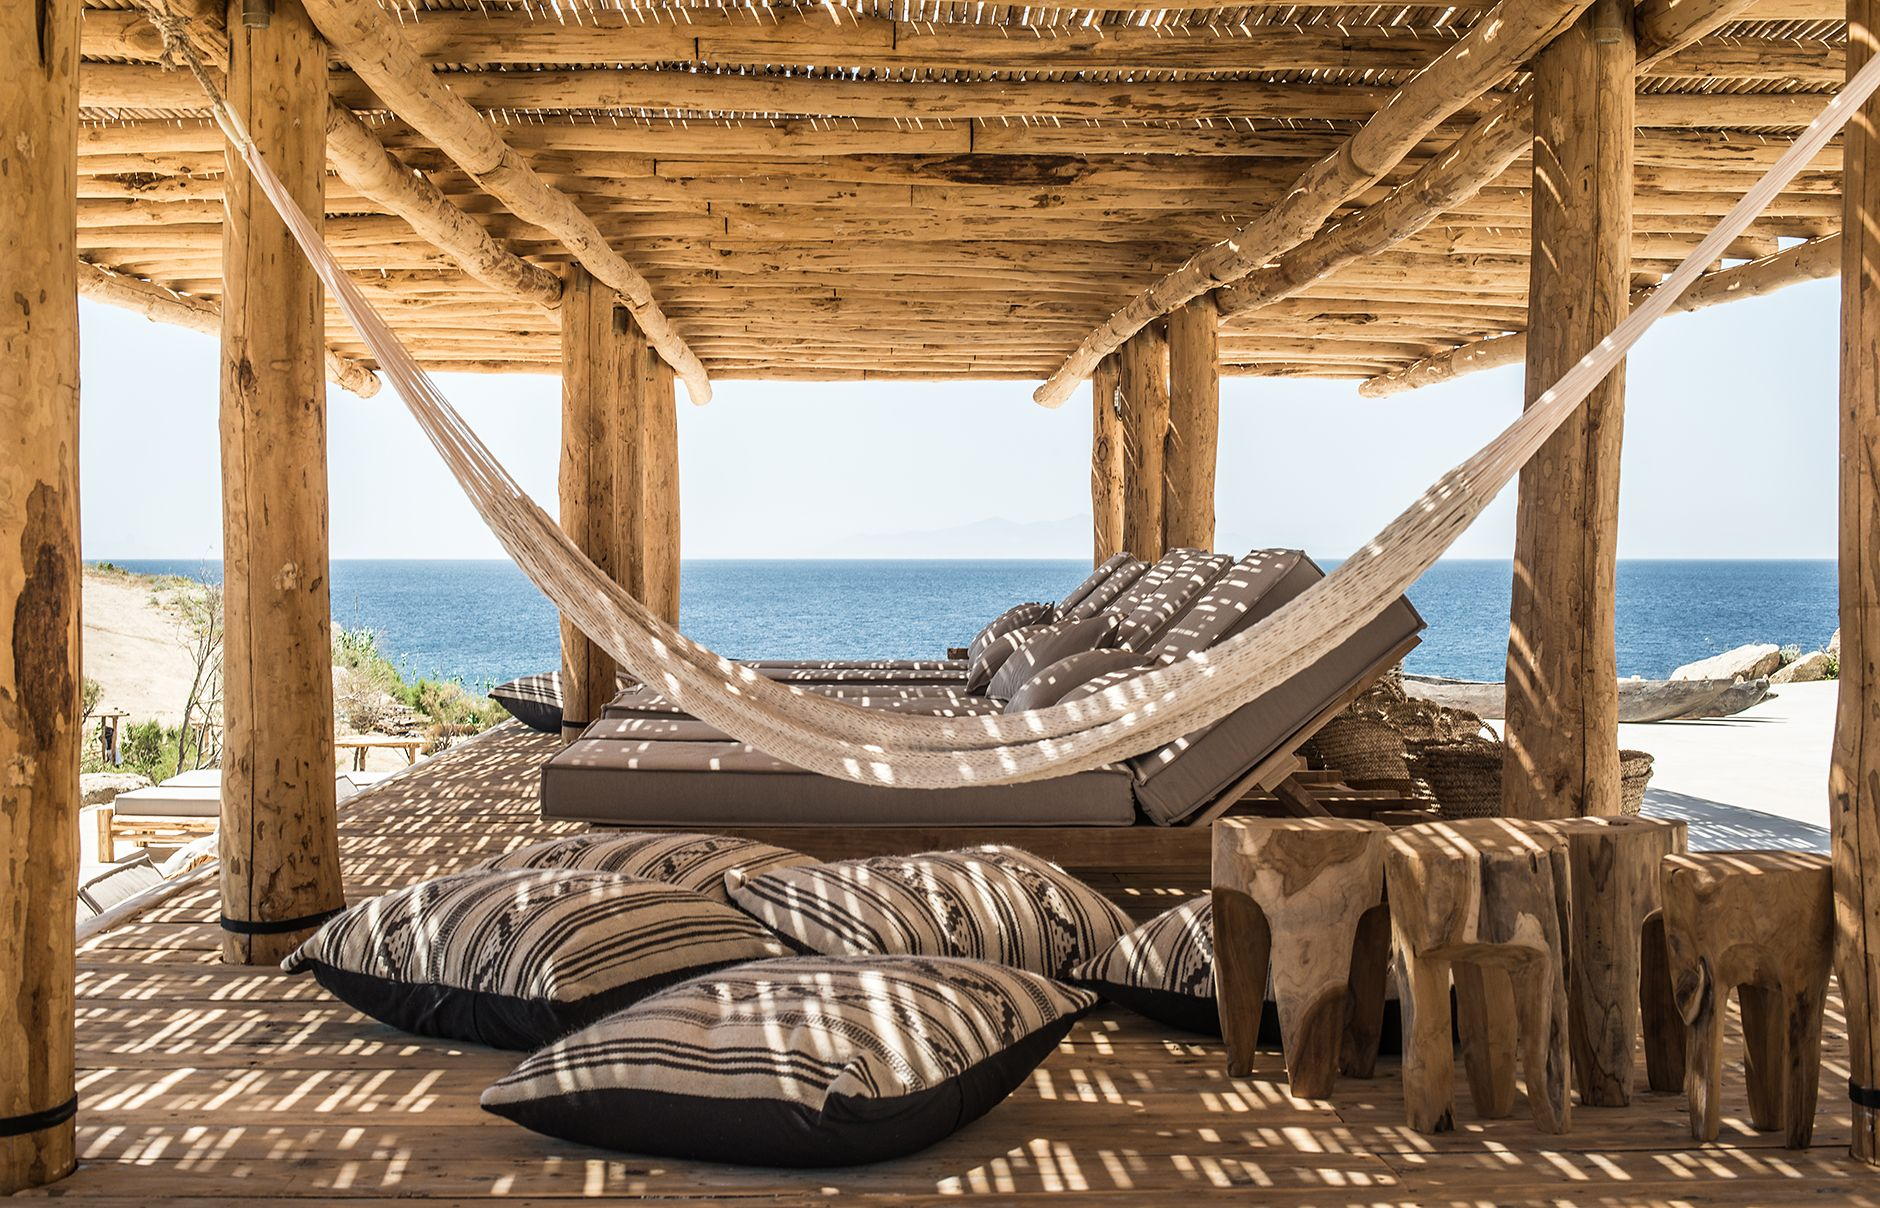 Rediscover a rustic beach experience at scorpios mykonos in greece luxury hotels • travelplusstyle